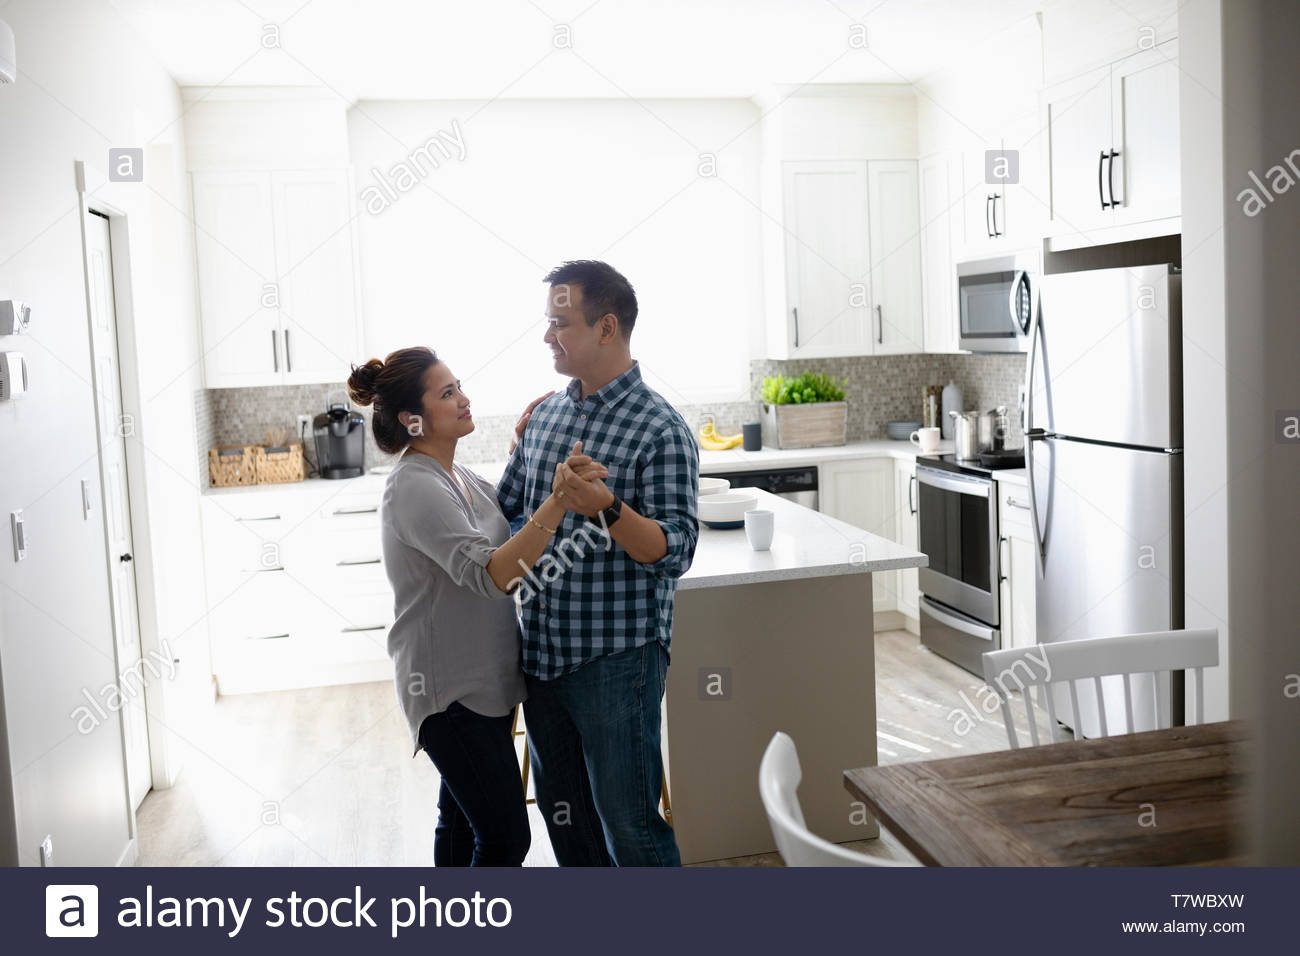 Affectionate couple dancing in kitchen Stock Photo